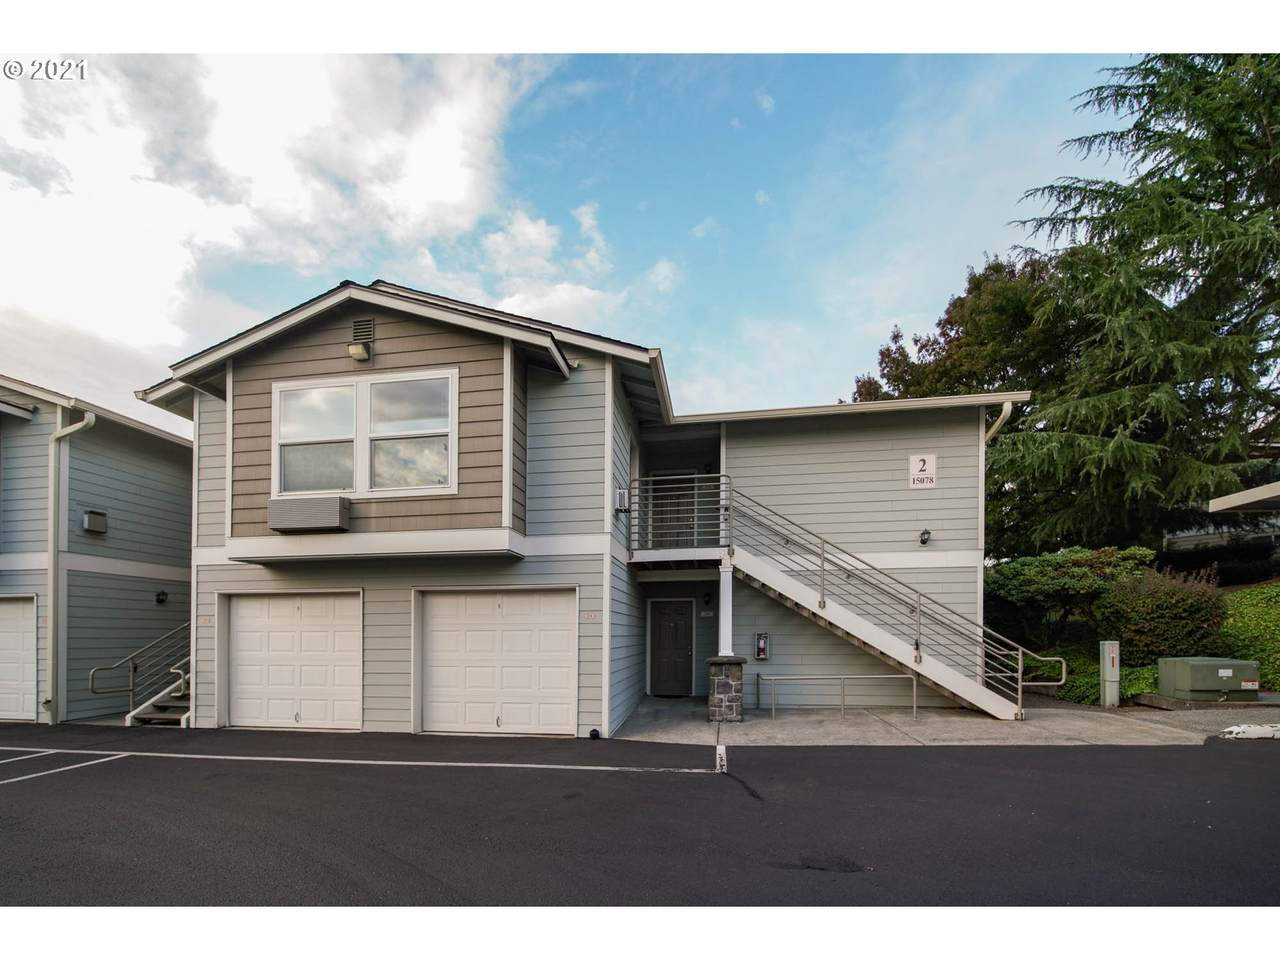 15078 Central Dr - Photo 1